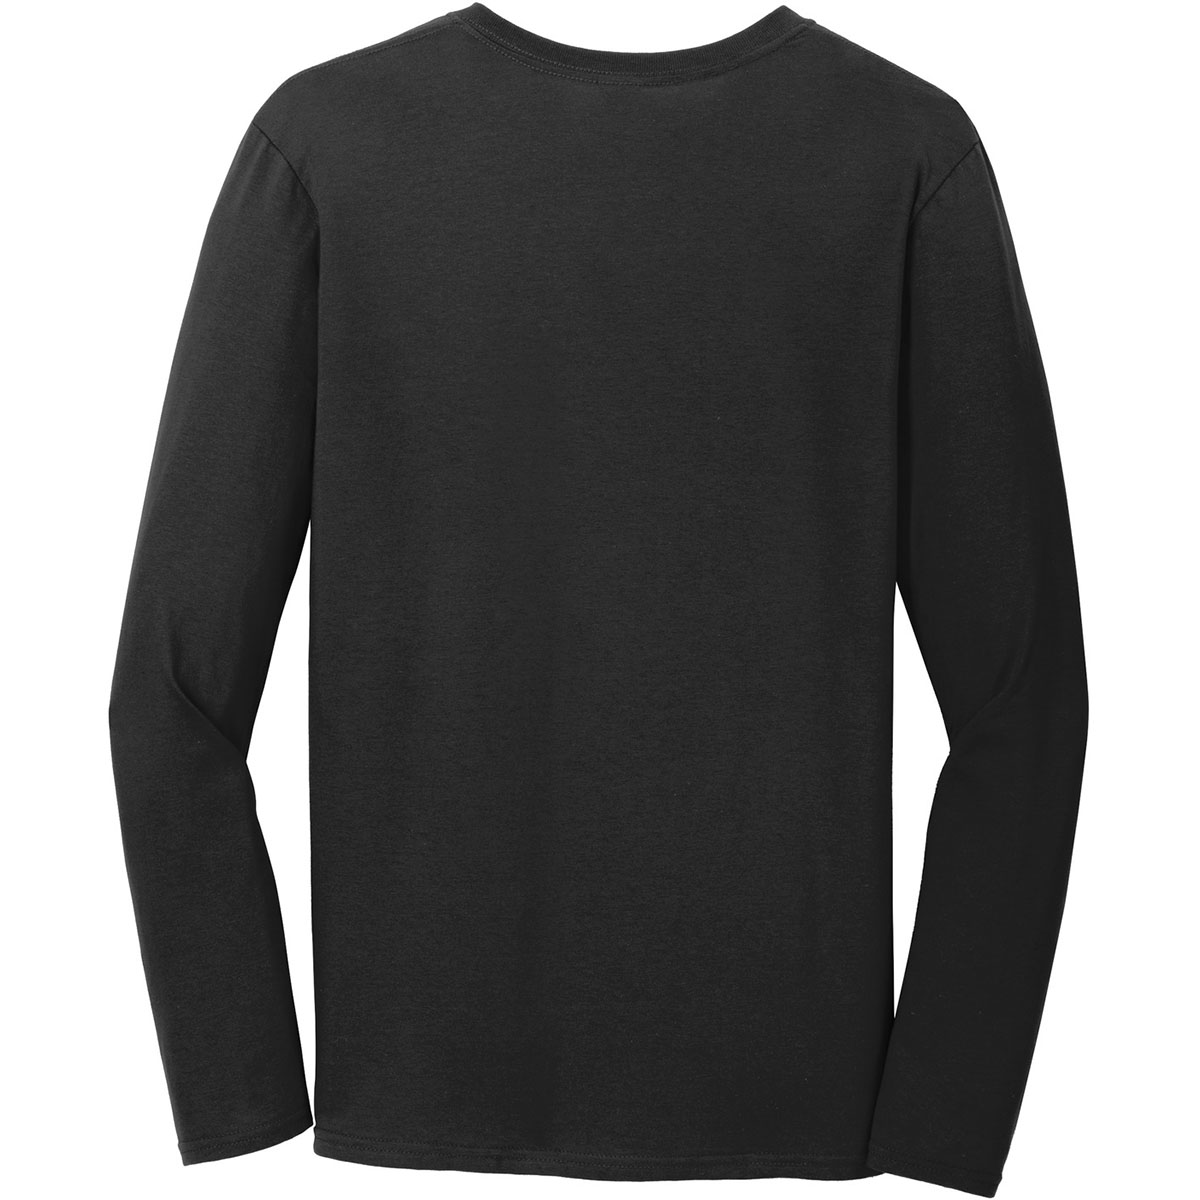 Gildan 64400 softstyle long sleeve t shirt black for Gildan brand t shirt size chart